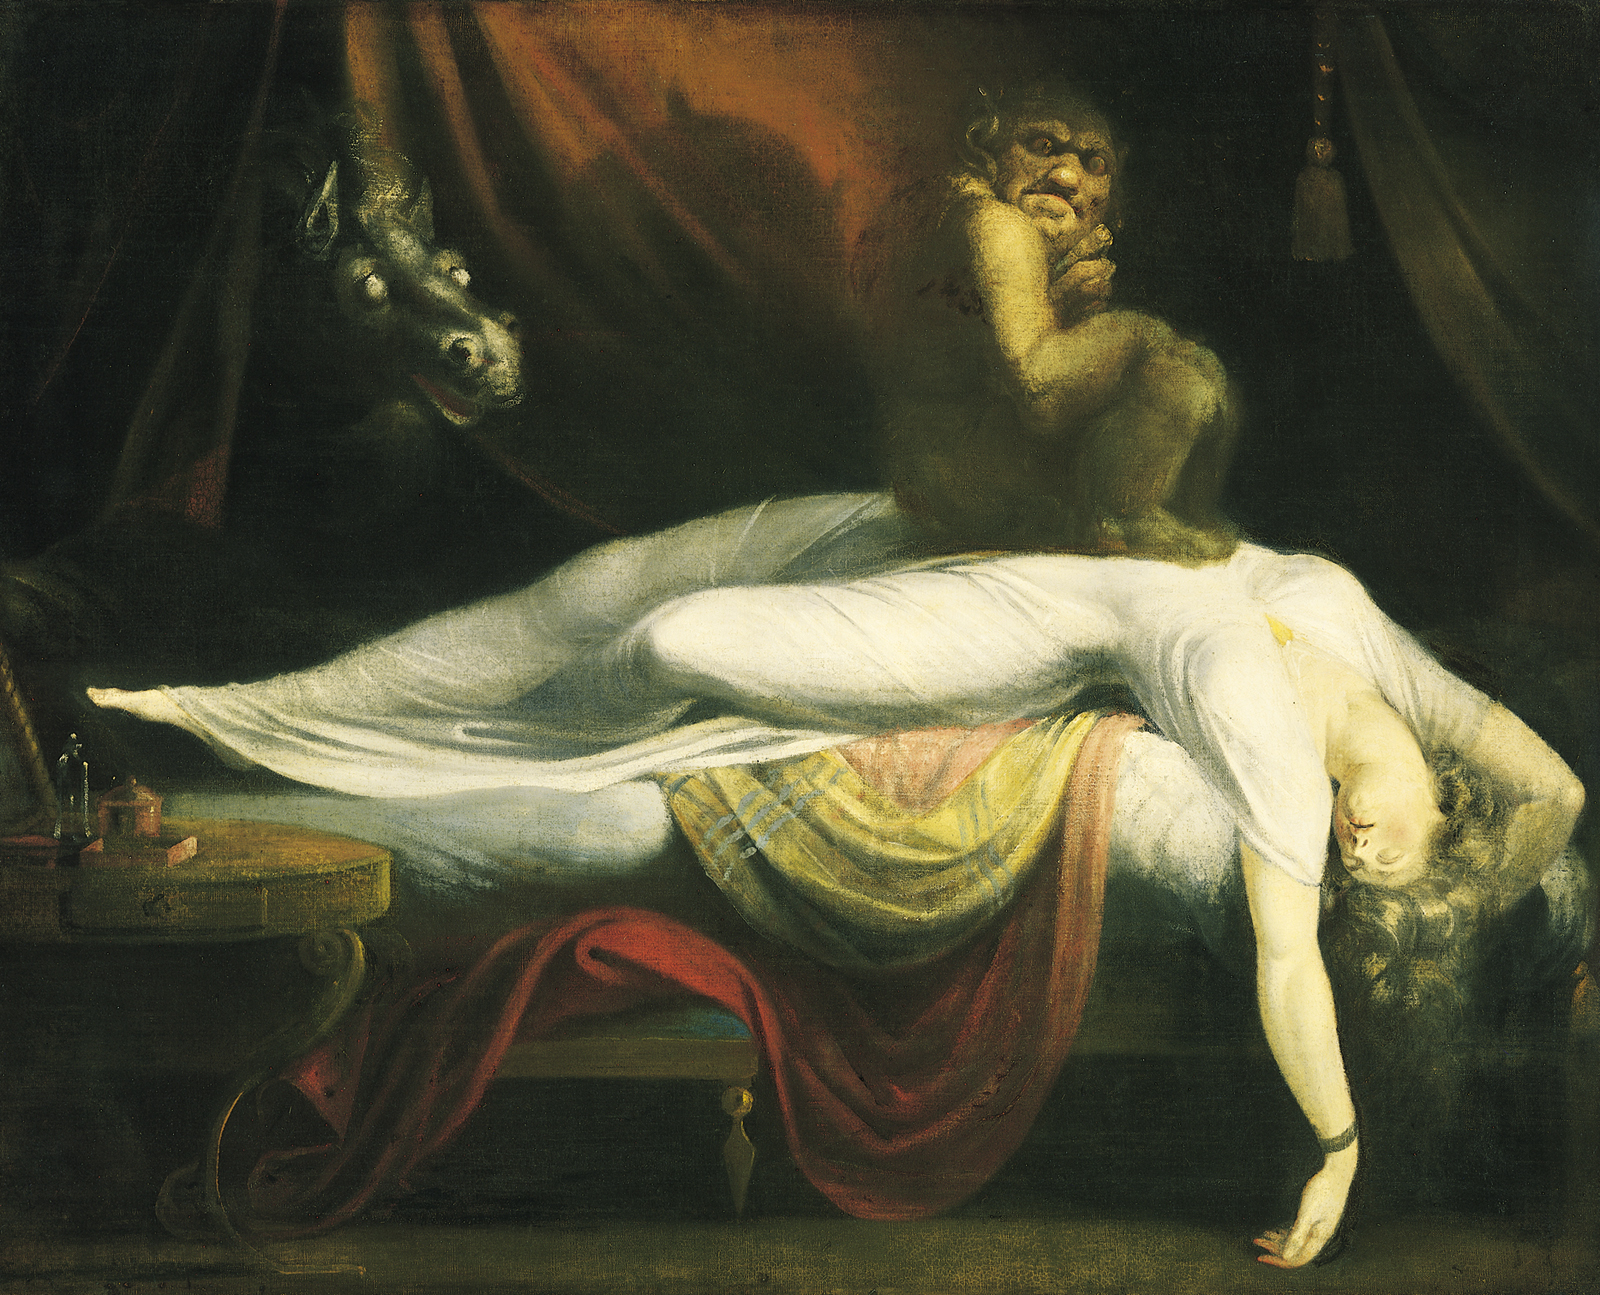 """The Nightmare,"" by John Henry Fuselli, captures the heaviness on the chest and strange imagery evoked by sleep paralysis. (credit: Courtesy of Wikimedia Commons)"